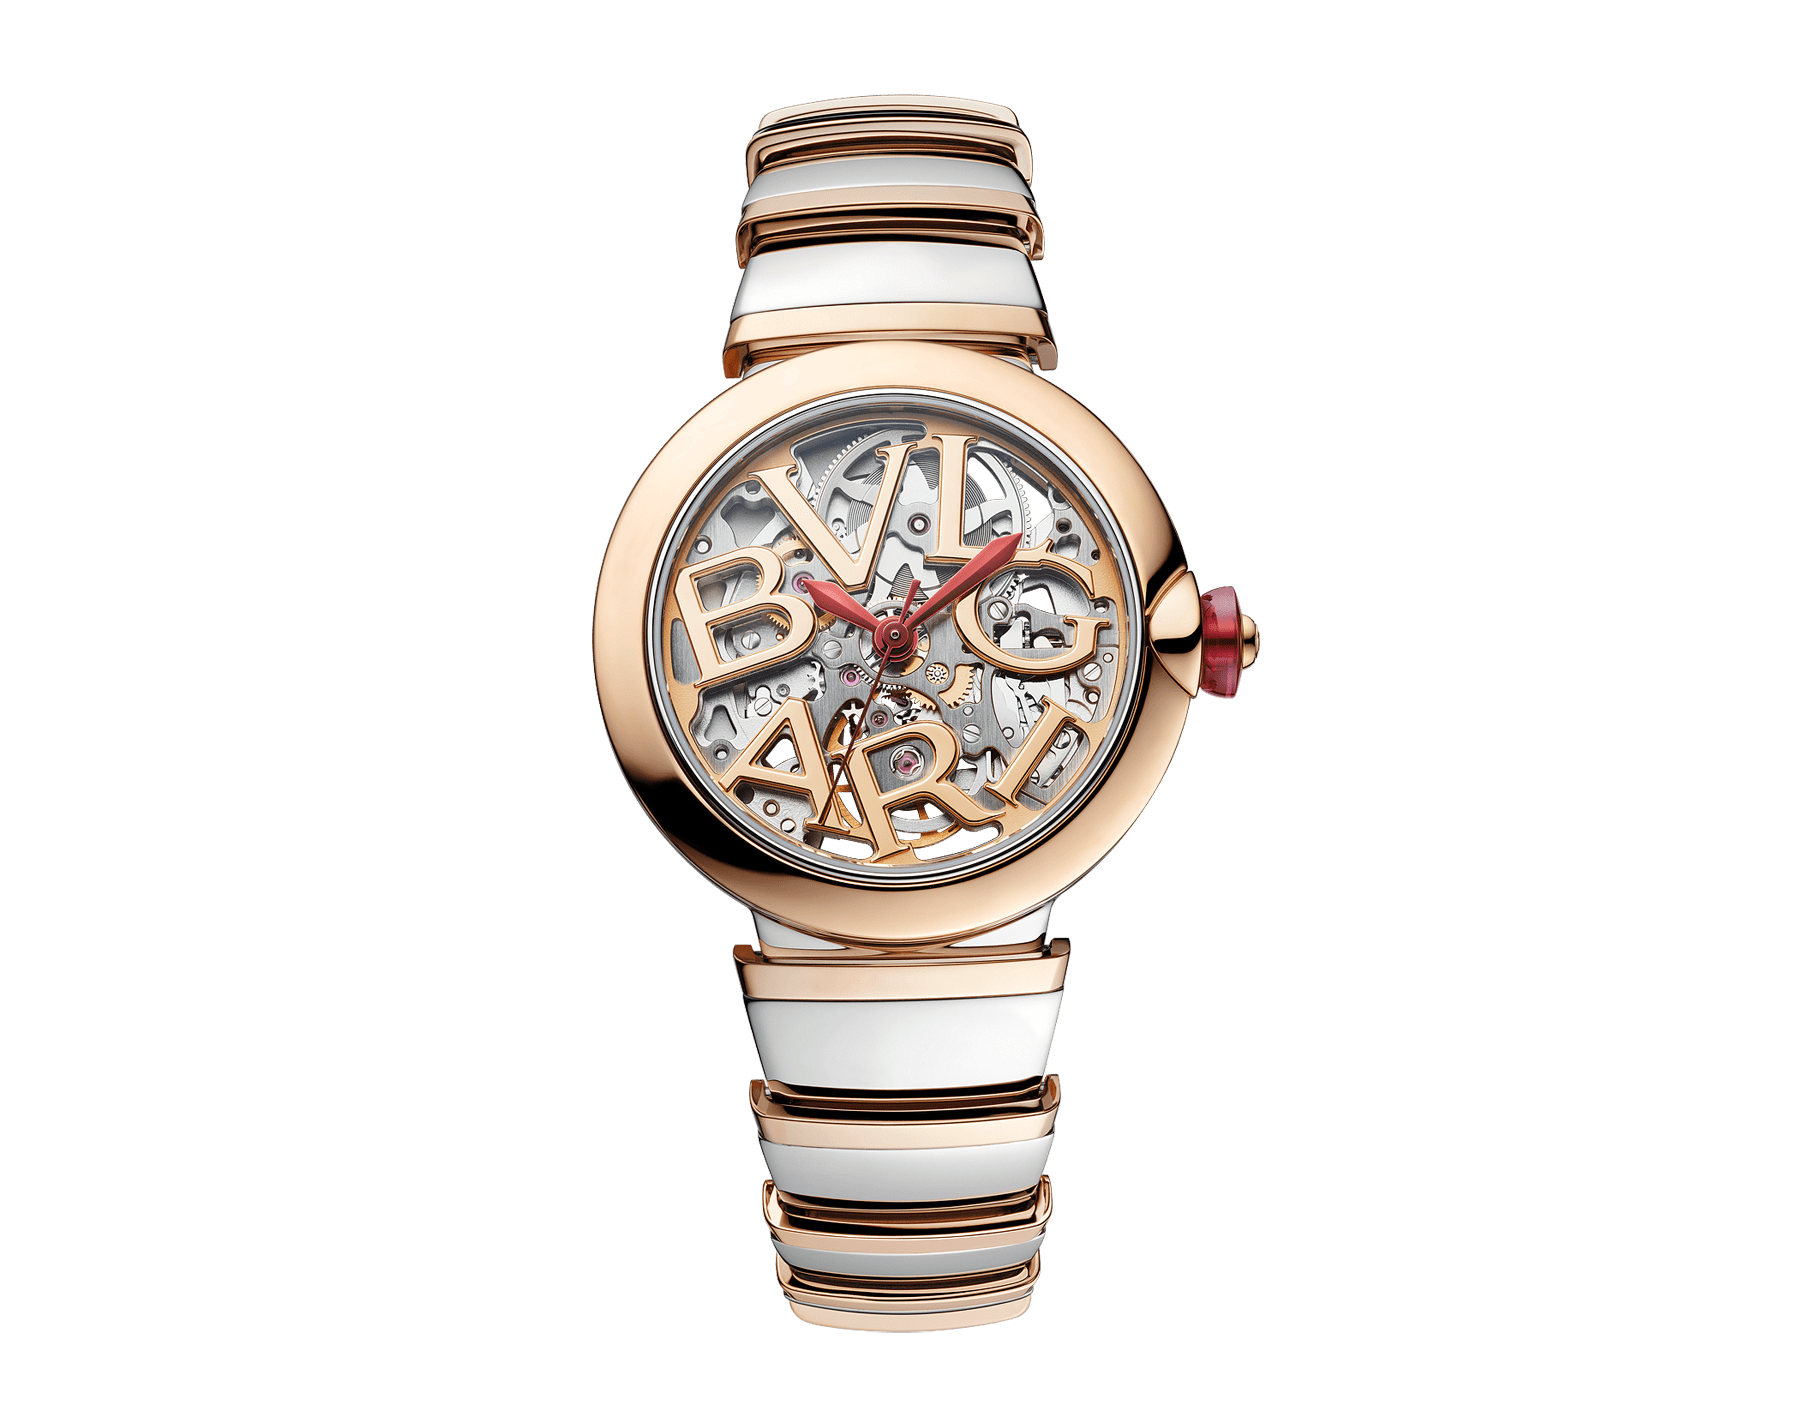 LVCEA Skeleton watch with mechanical manufacture movement, automatic winding, stainless steel and 18 kt rose gold case and bracelet, and openwork BVLGARI logo dial 102878 image 1